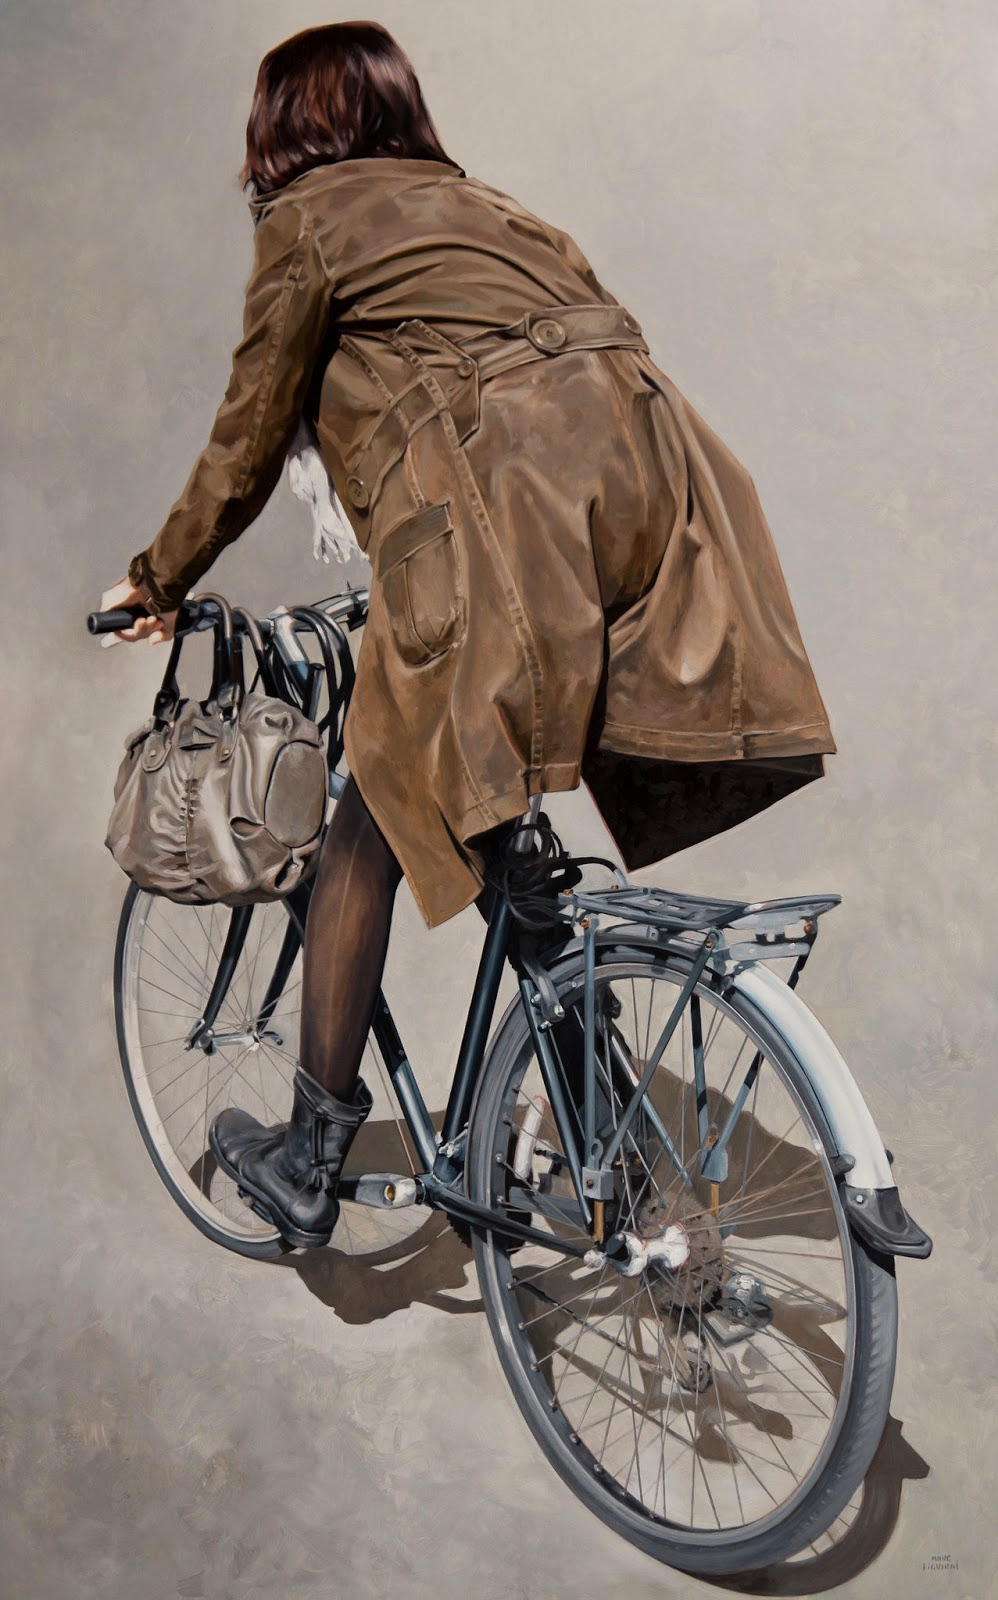 Hyper Realistic Girls Figure Painting By Marc Figueras (12)